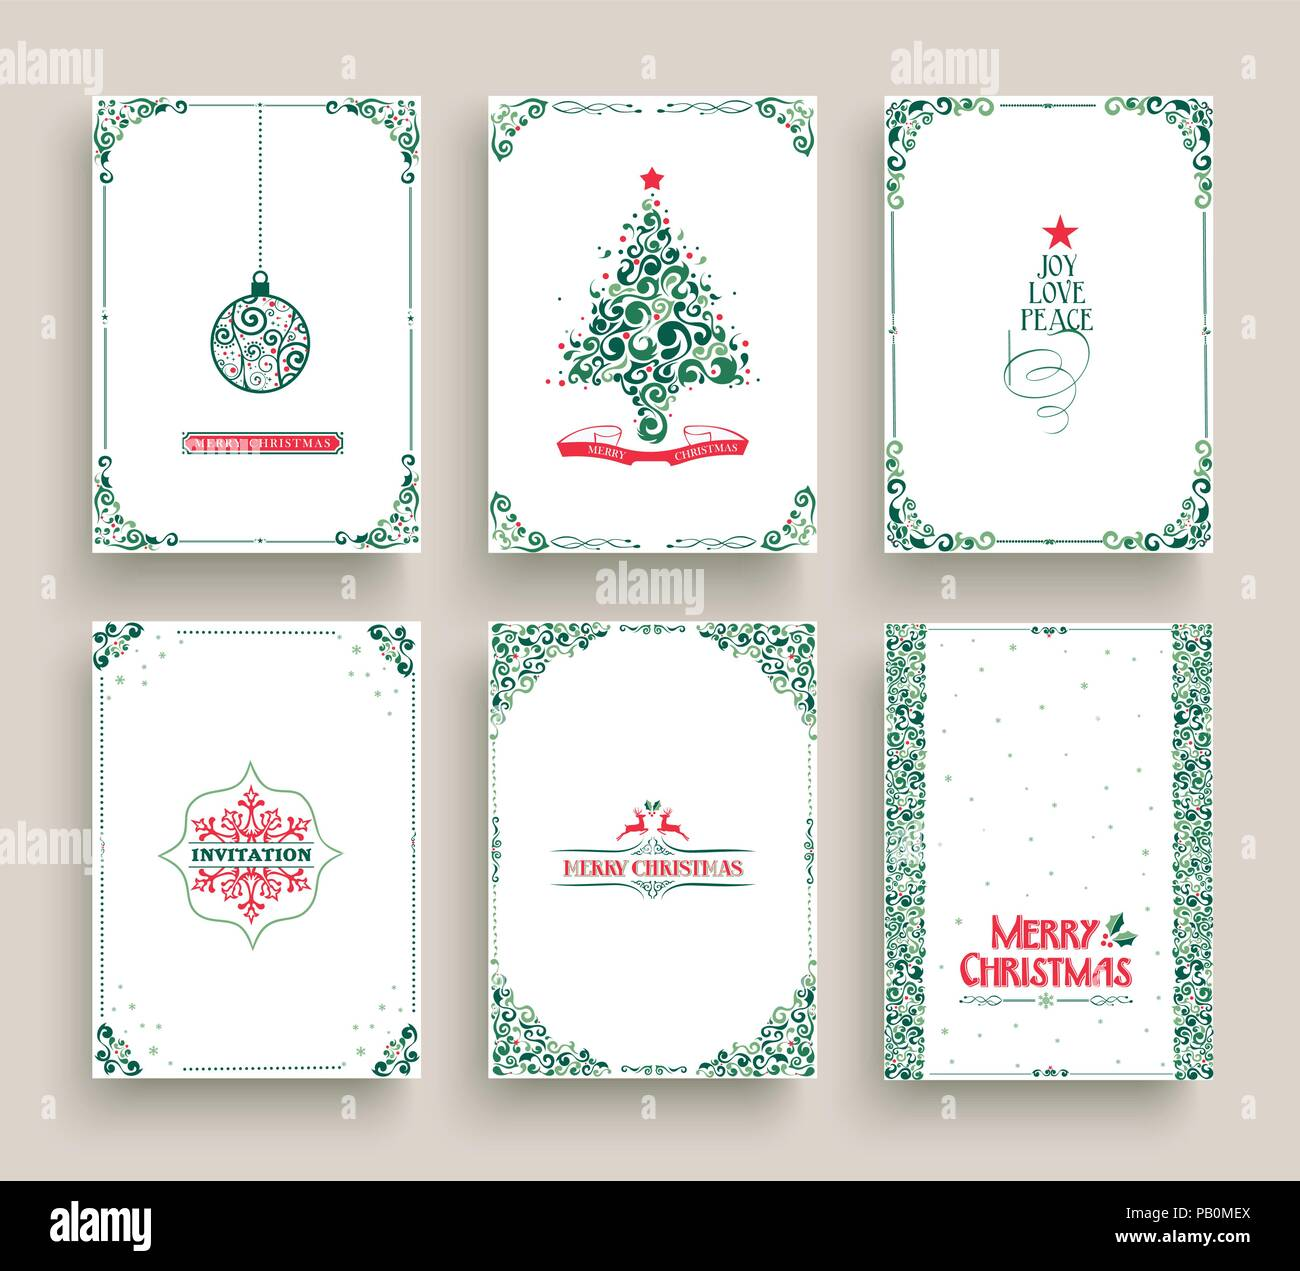 Merry christmas set of vintage holiday greeting card templates merry christmas set of vintage holiday greeting card templates retro style collection in festive colors with xmas pine tree winter snowflake ball o m4hsunfo